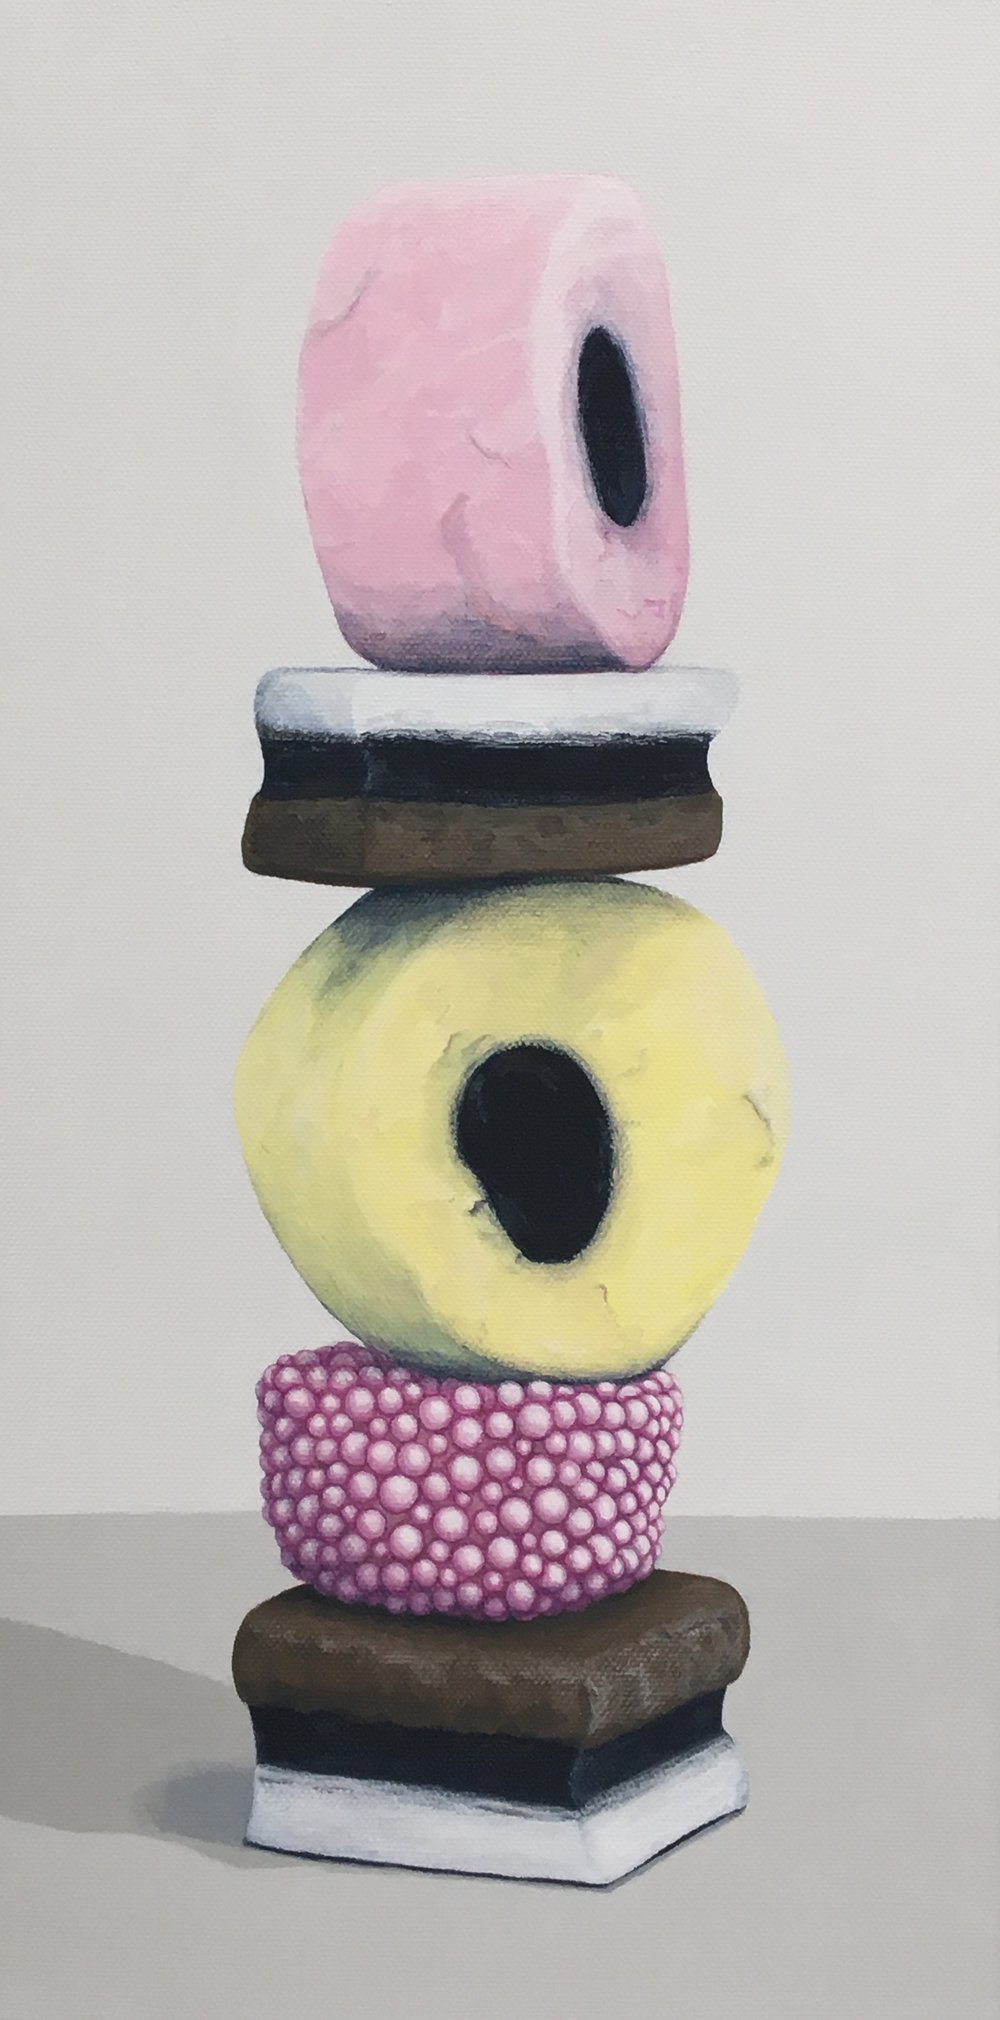 "Totem: Allsorts IV   This enticing candy stacks is a delightful temptation. As a culture we are generally attracted to these charming colors and interesting shapes, but once the candy is experienced as a food there is often a mismatch between its attractiveness and its taste. This work explores the occurrence of the incongruity of appearance and experience.  8"" x 16"" gallery wrapped canvas  $400.00"